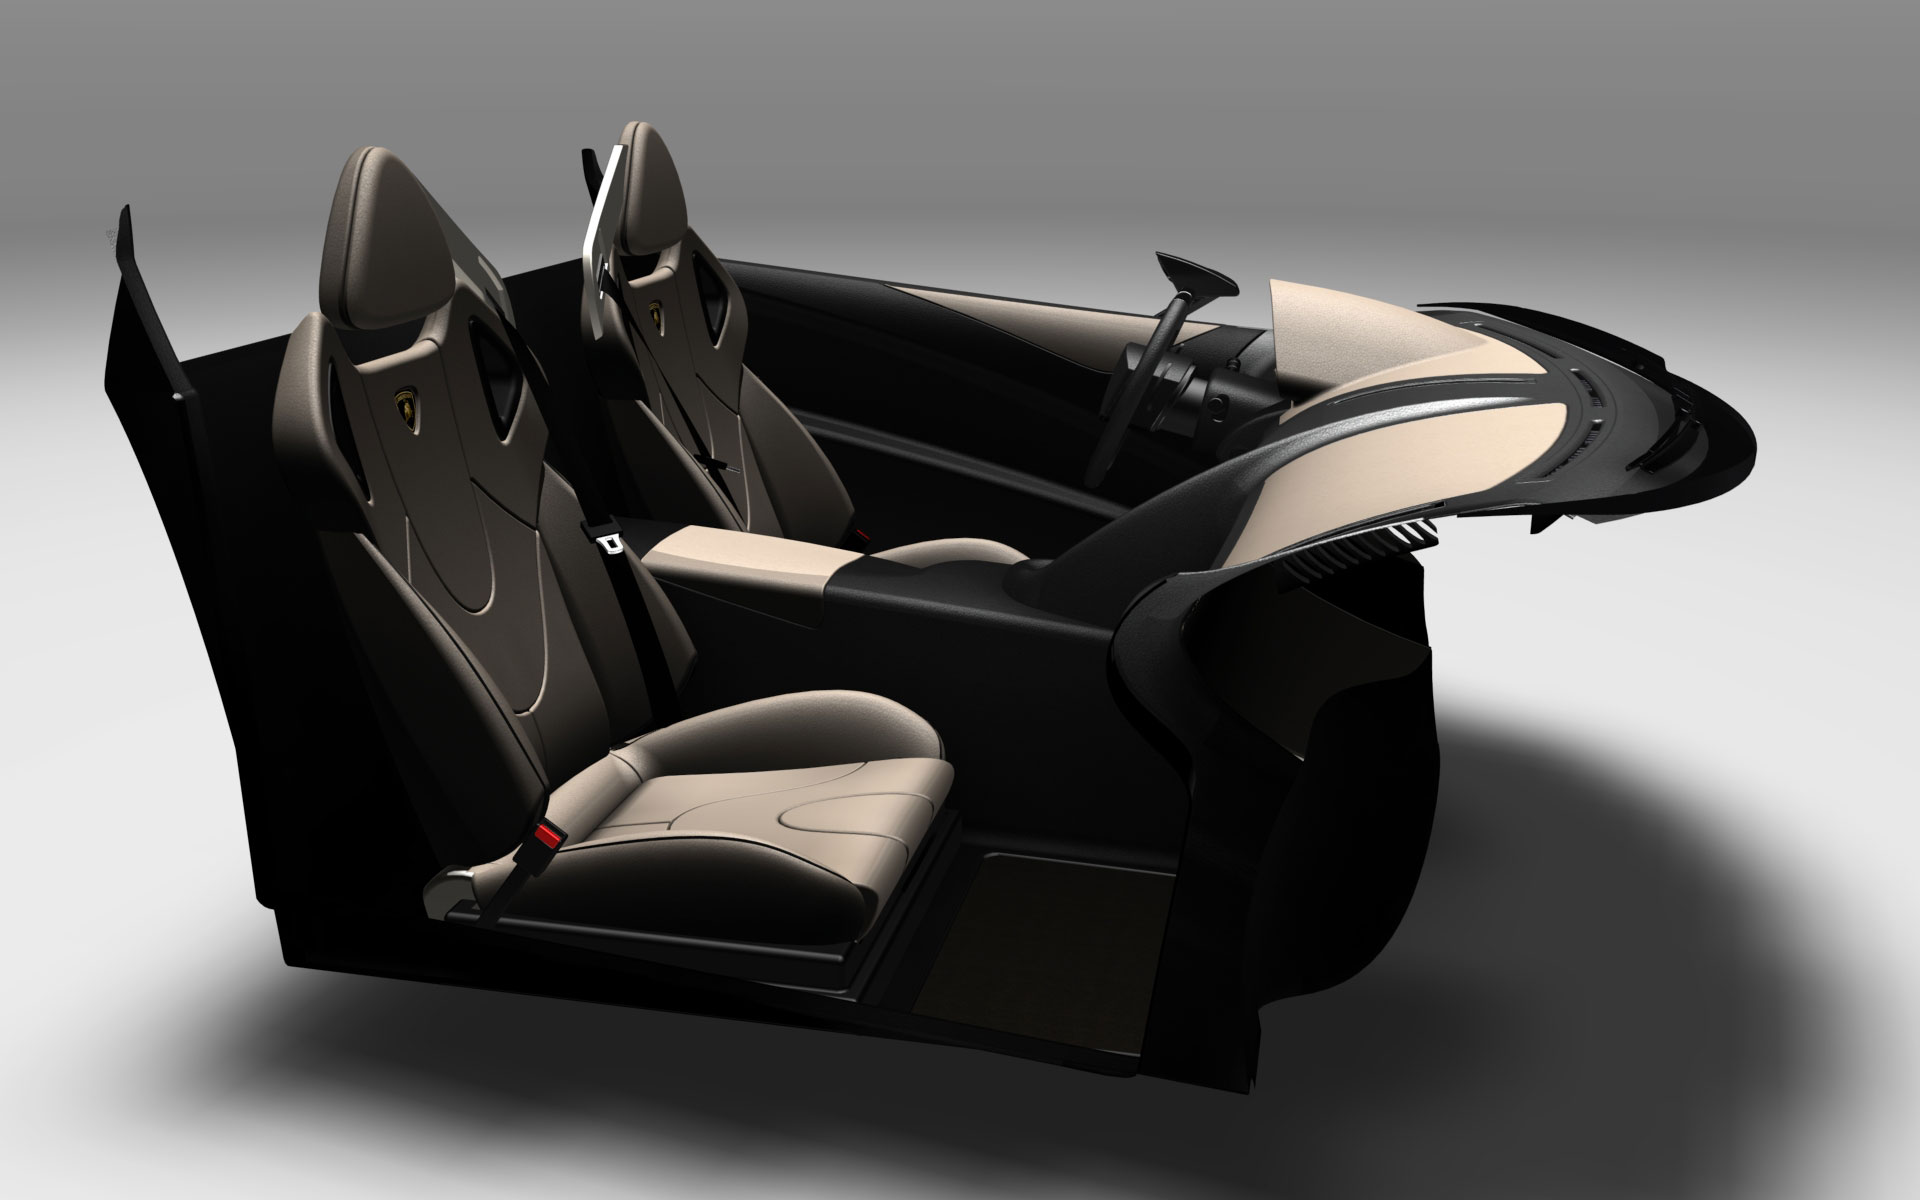 lamborghini murcielago interior rendering car body design. Black Bedroom Furniture Sets. Home Design Ideas